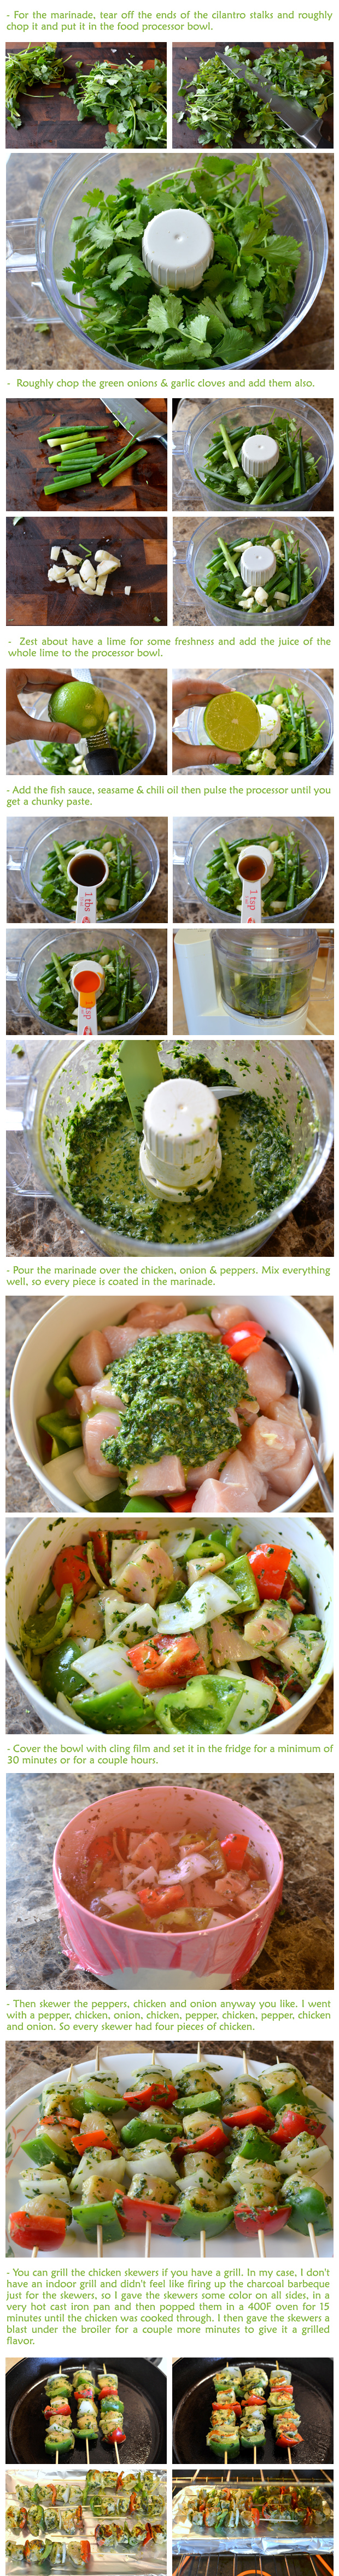 Cilantro-Lime Chicken Skewers Recipe (Part-2)